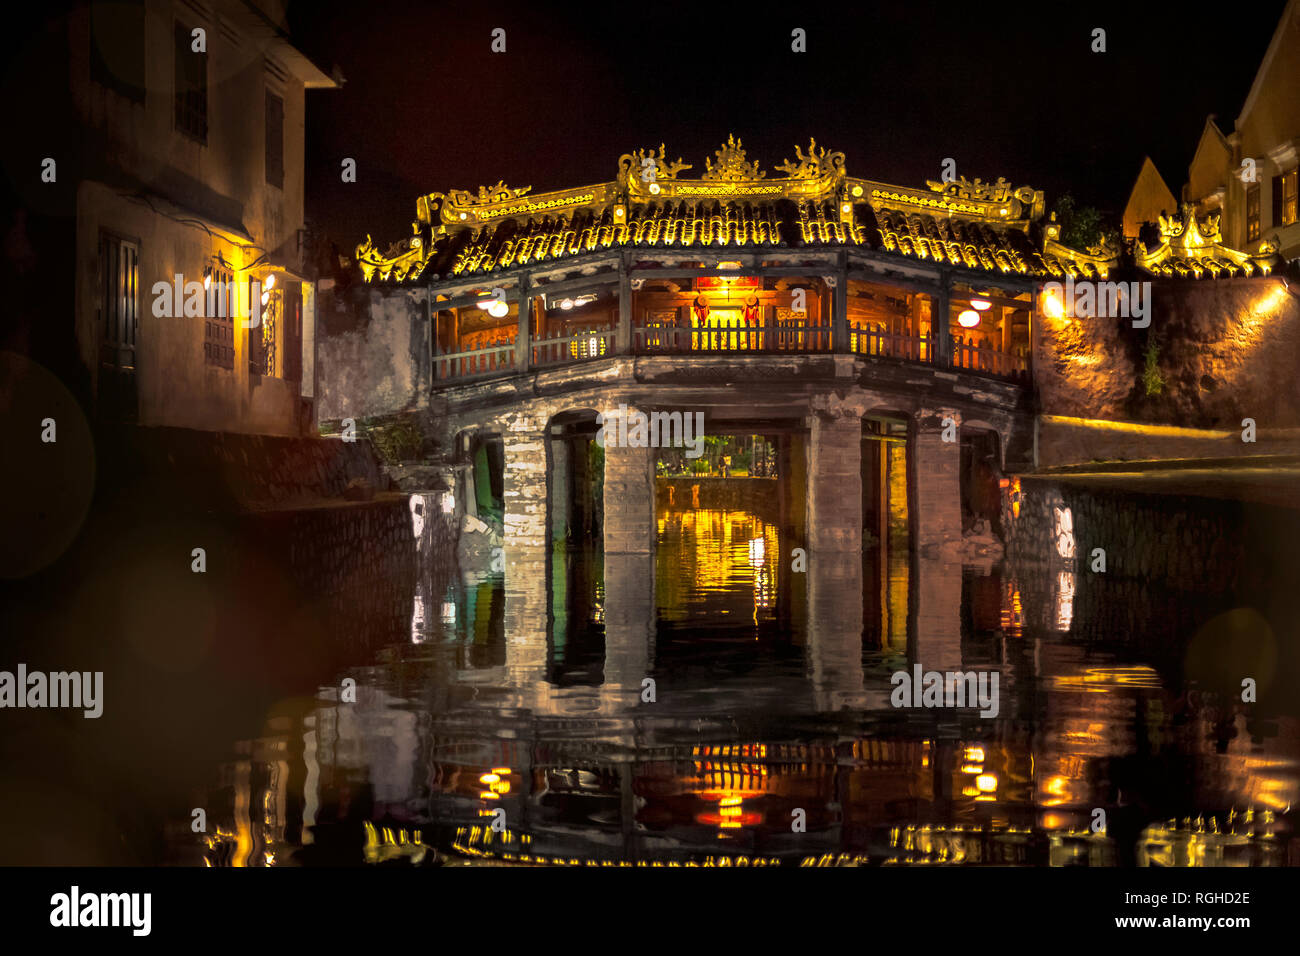 Vietnam, Hoi An, Chua Cau, japanese bridge at night - Stock Image